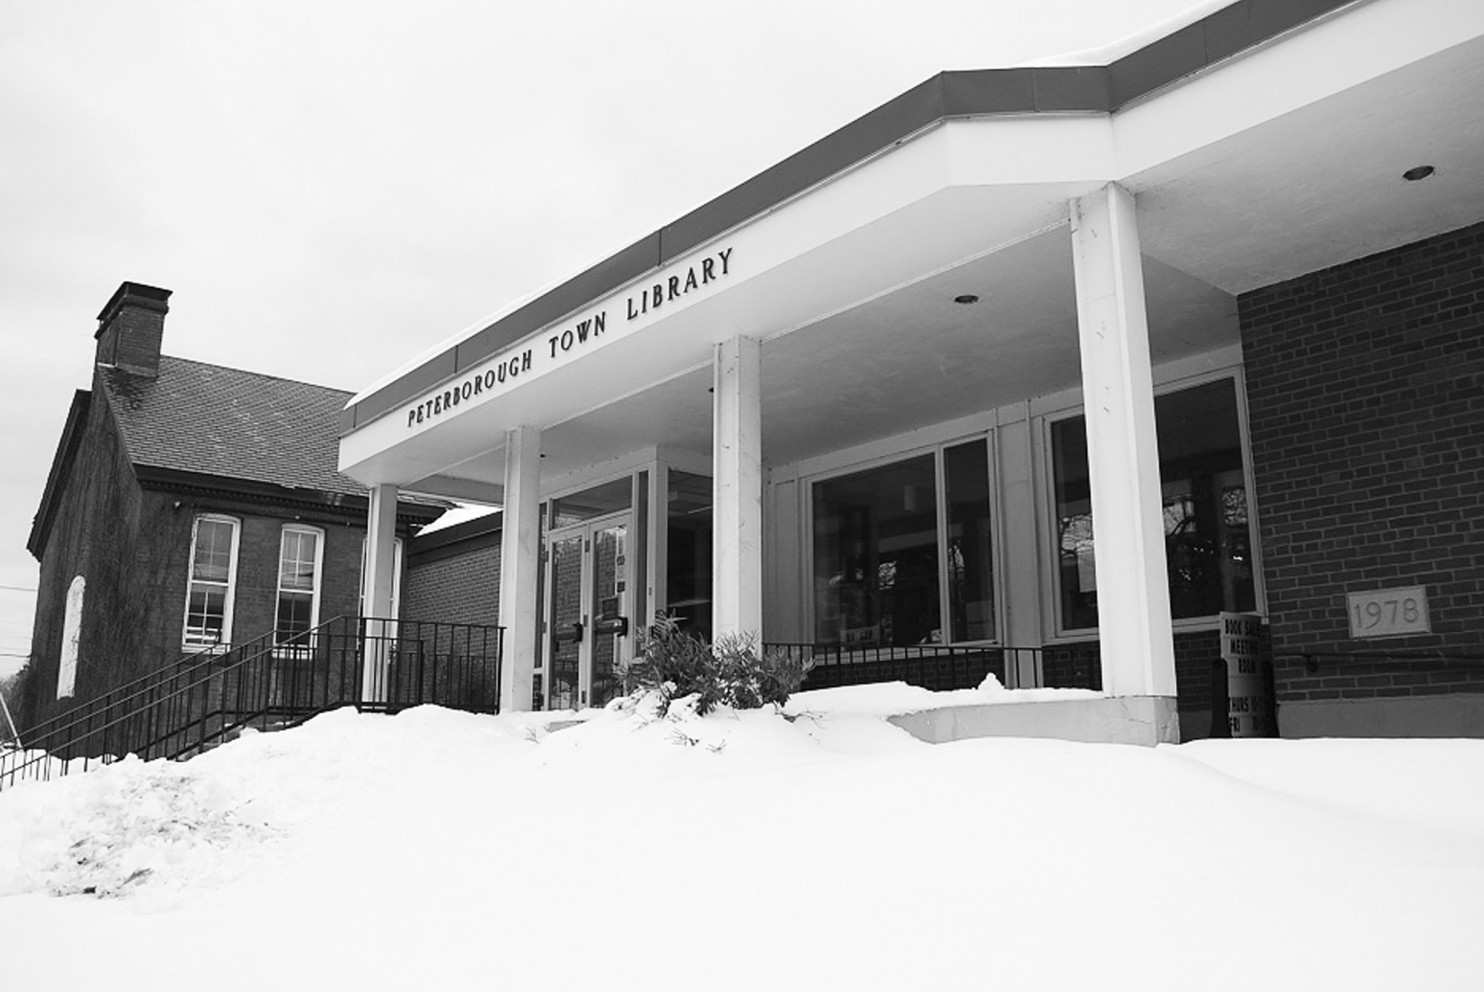 Best State In America: New Hampshire, For Loving Its Libraries Library